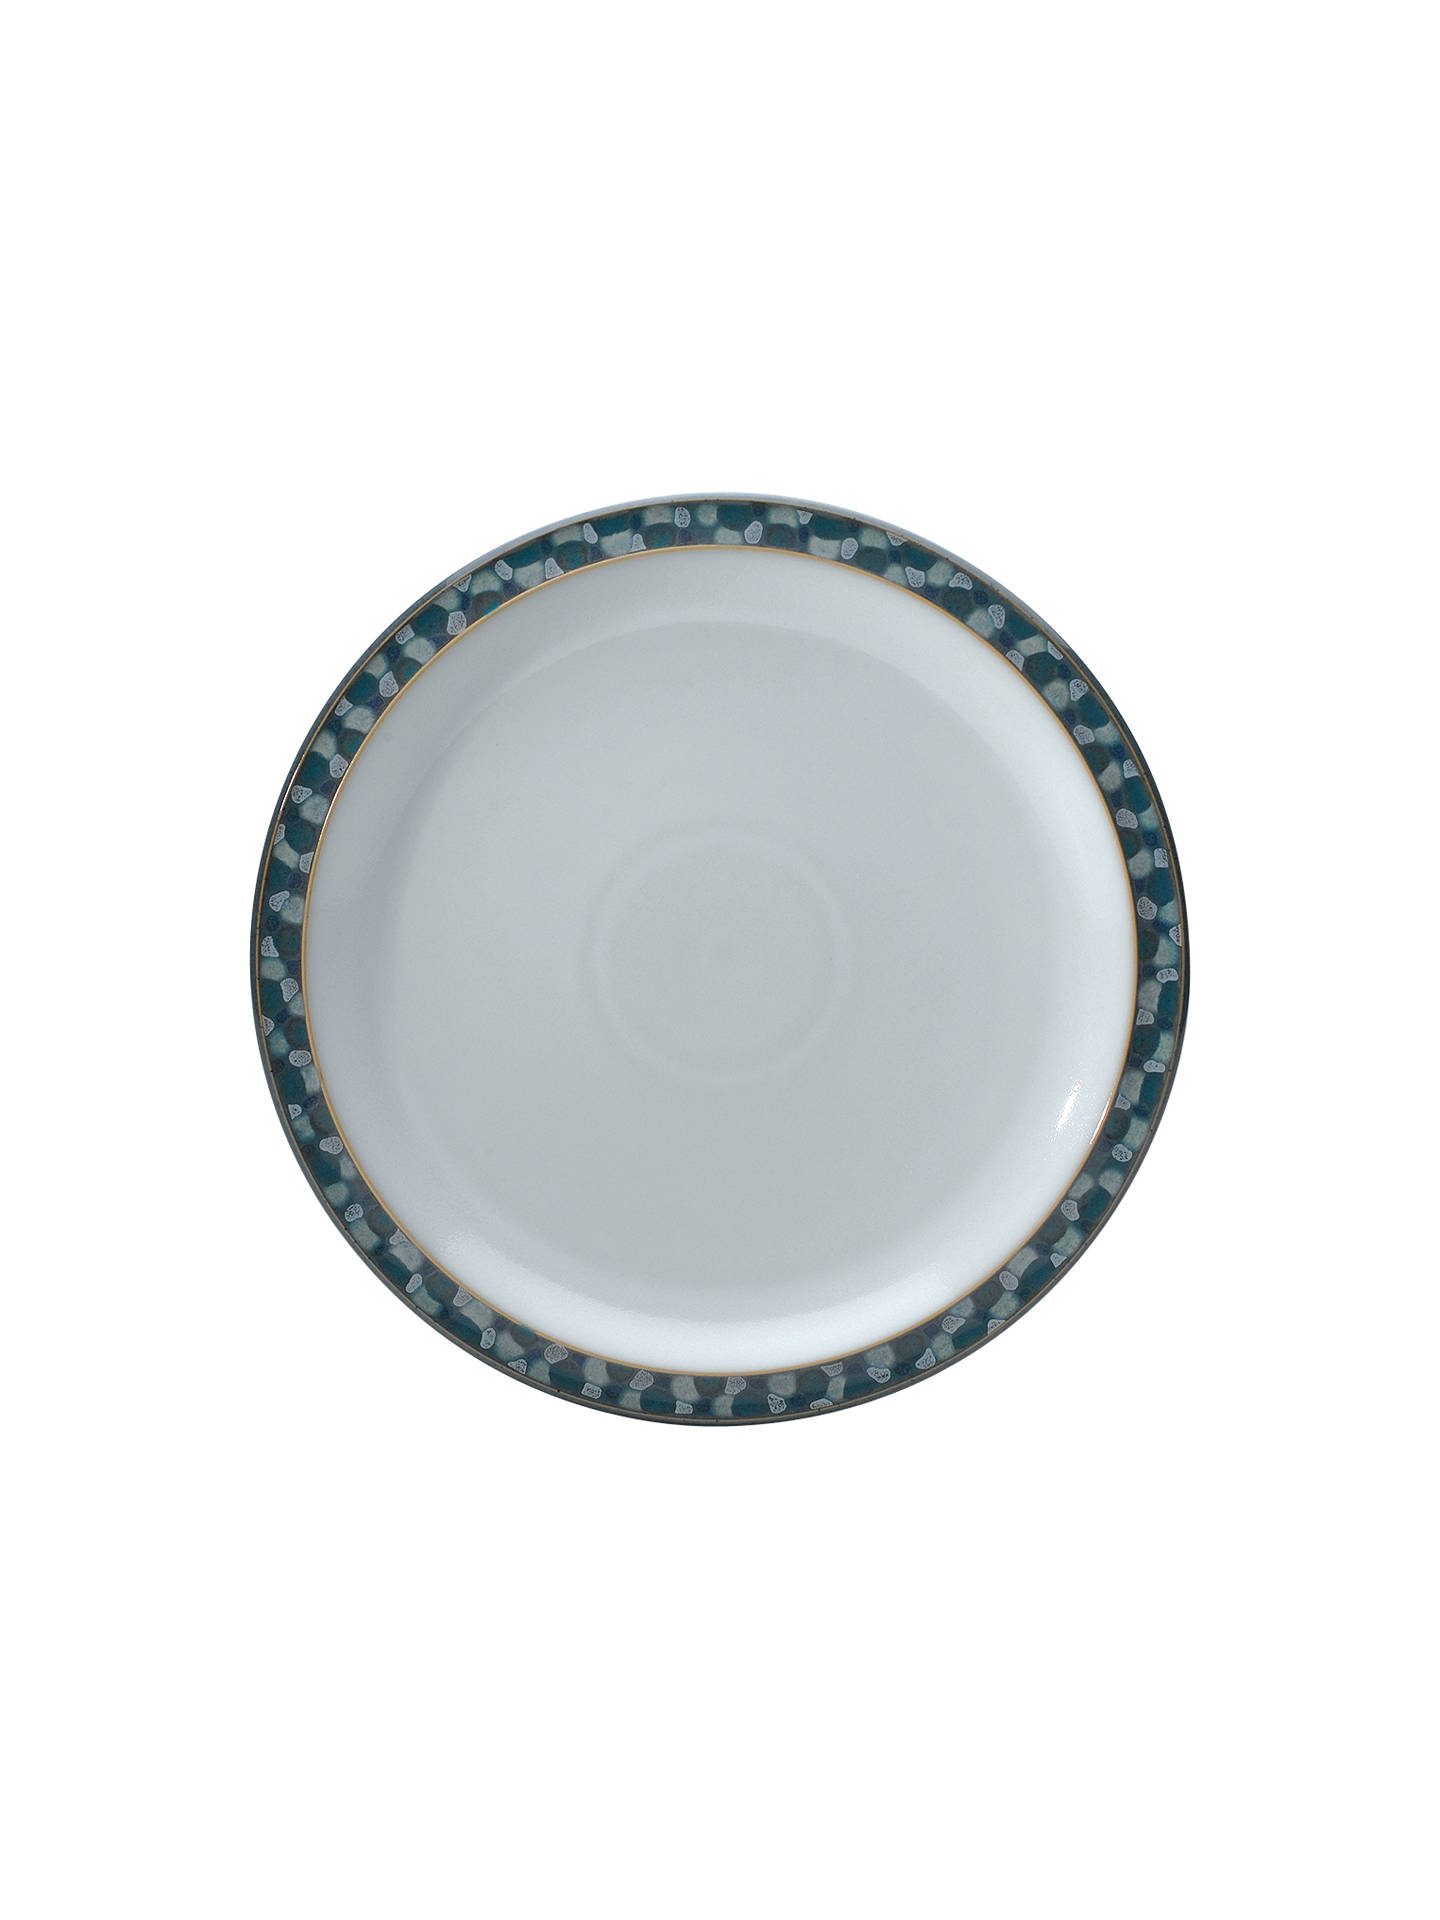 Blue by Denby Denby Azure Shell 4-Piece Place Setting